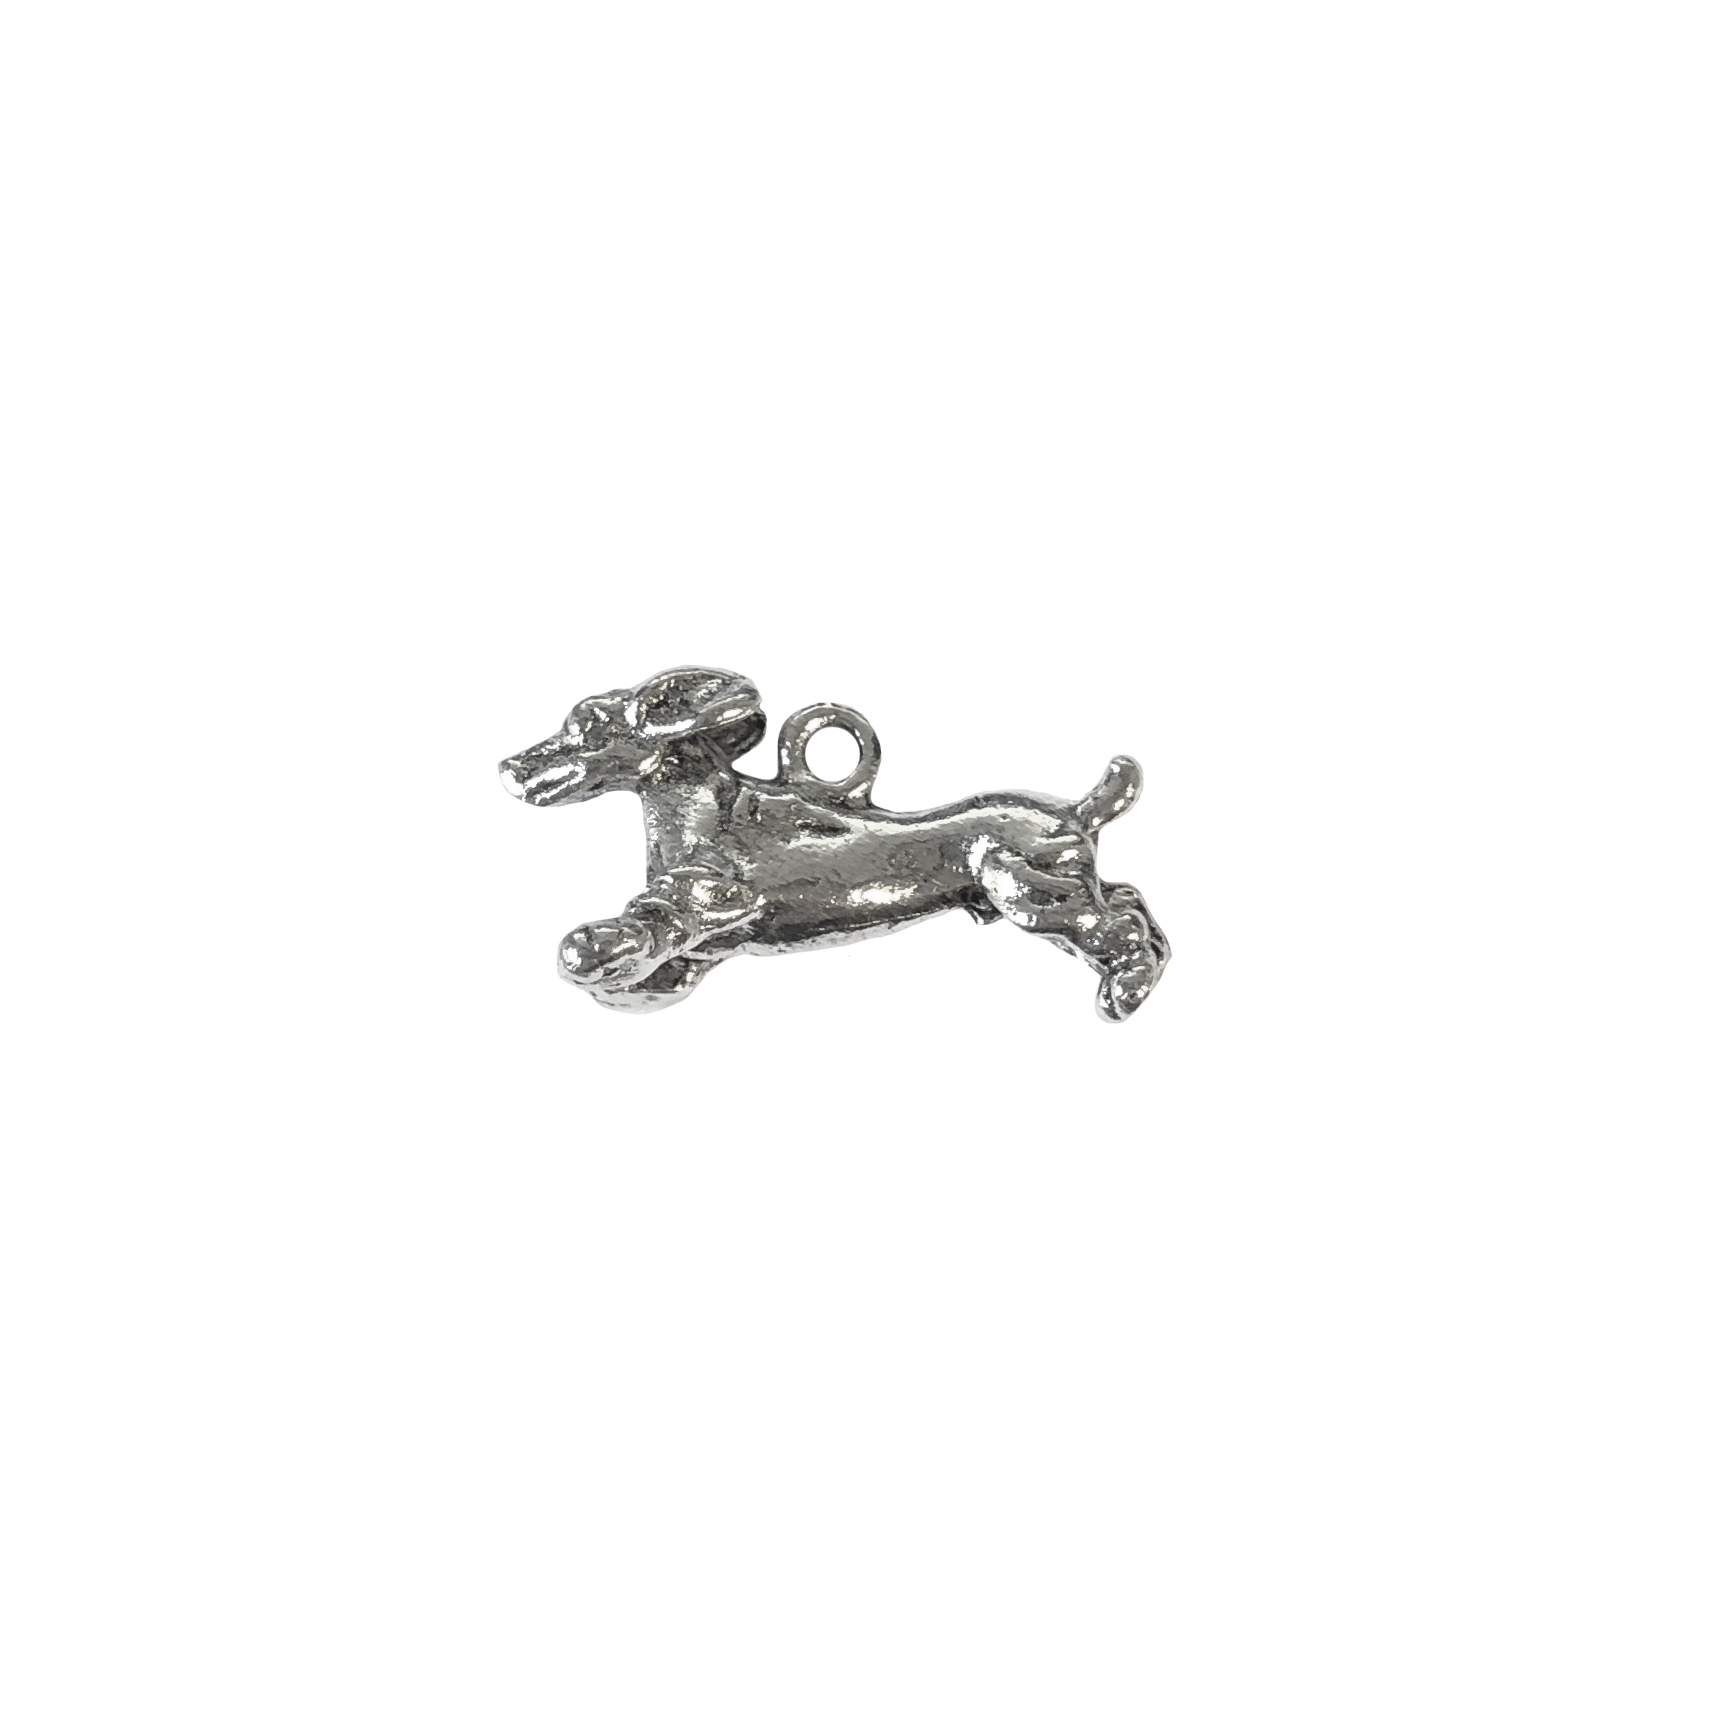 Dachshund charm, running dog, 07393, Old Silver, plated pewter, pewter, charm, dog charm, US made jewelry supplies, nickel free jewelry supplies, b'sue boutiques, dog jewelry, silver dog, silver charm,